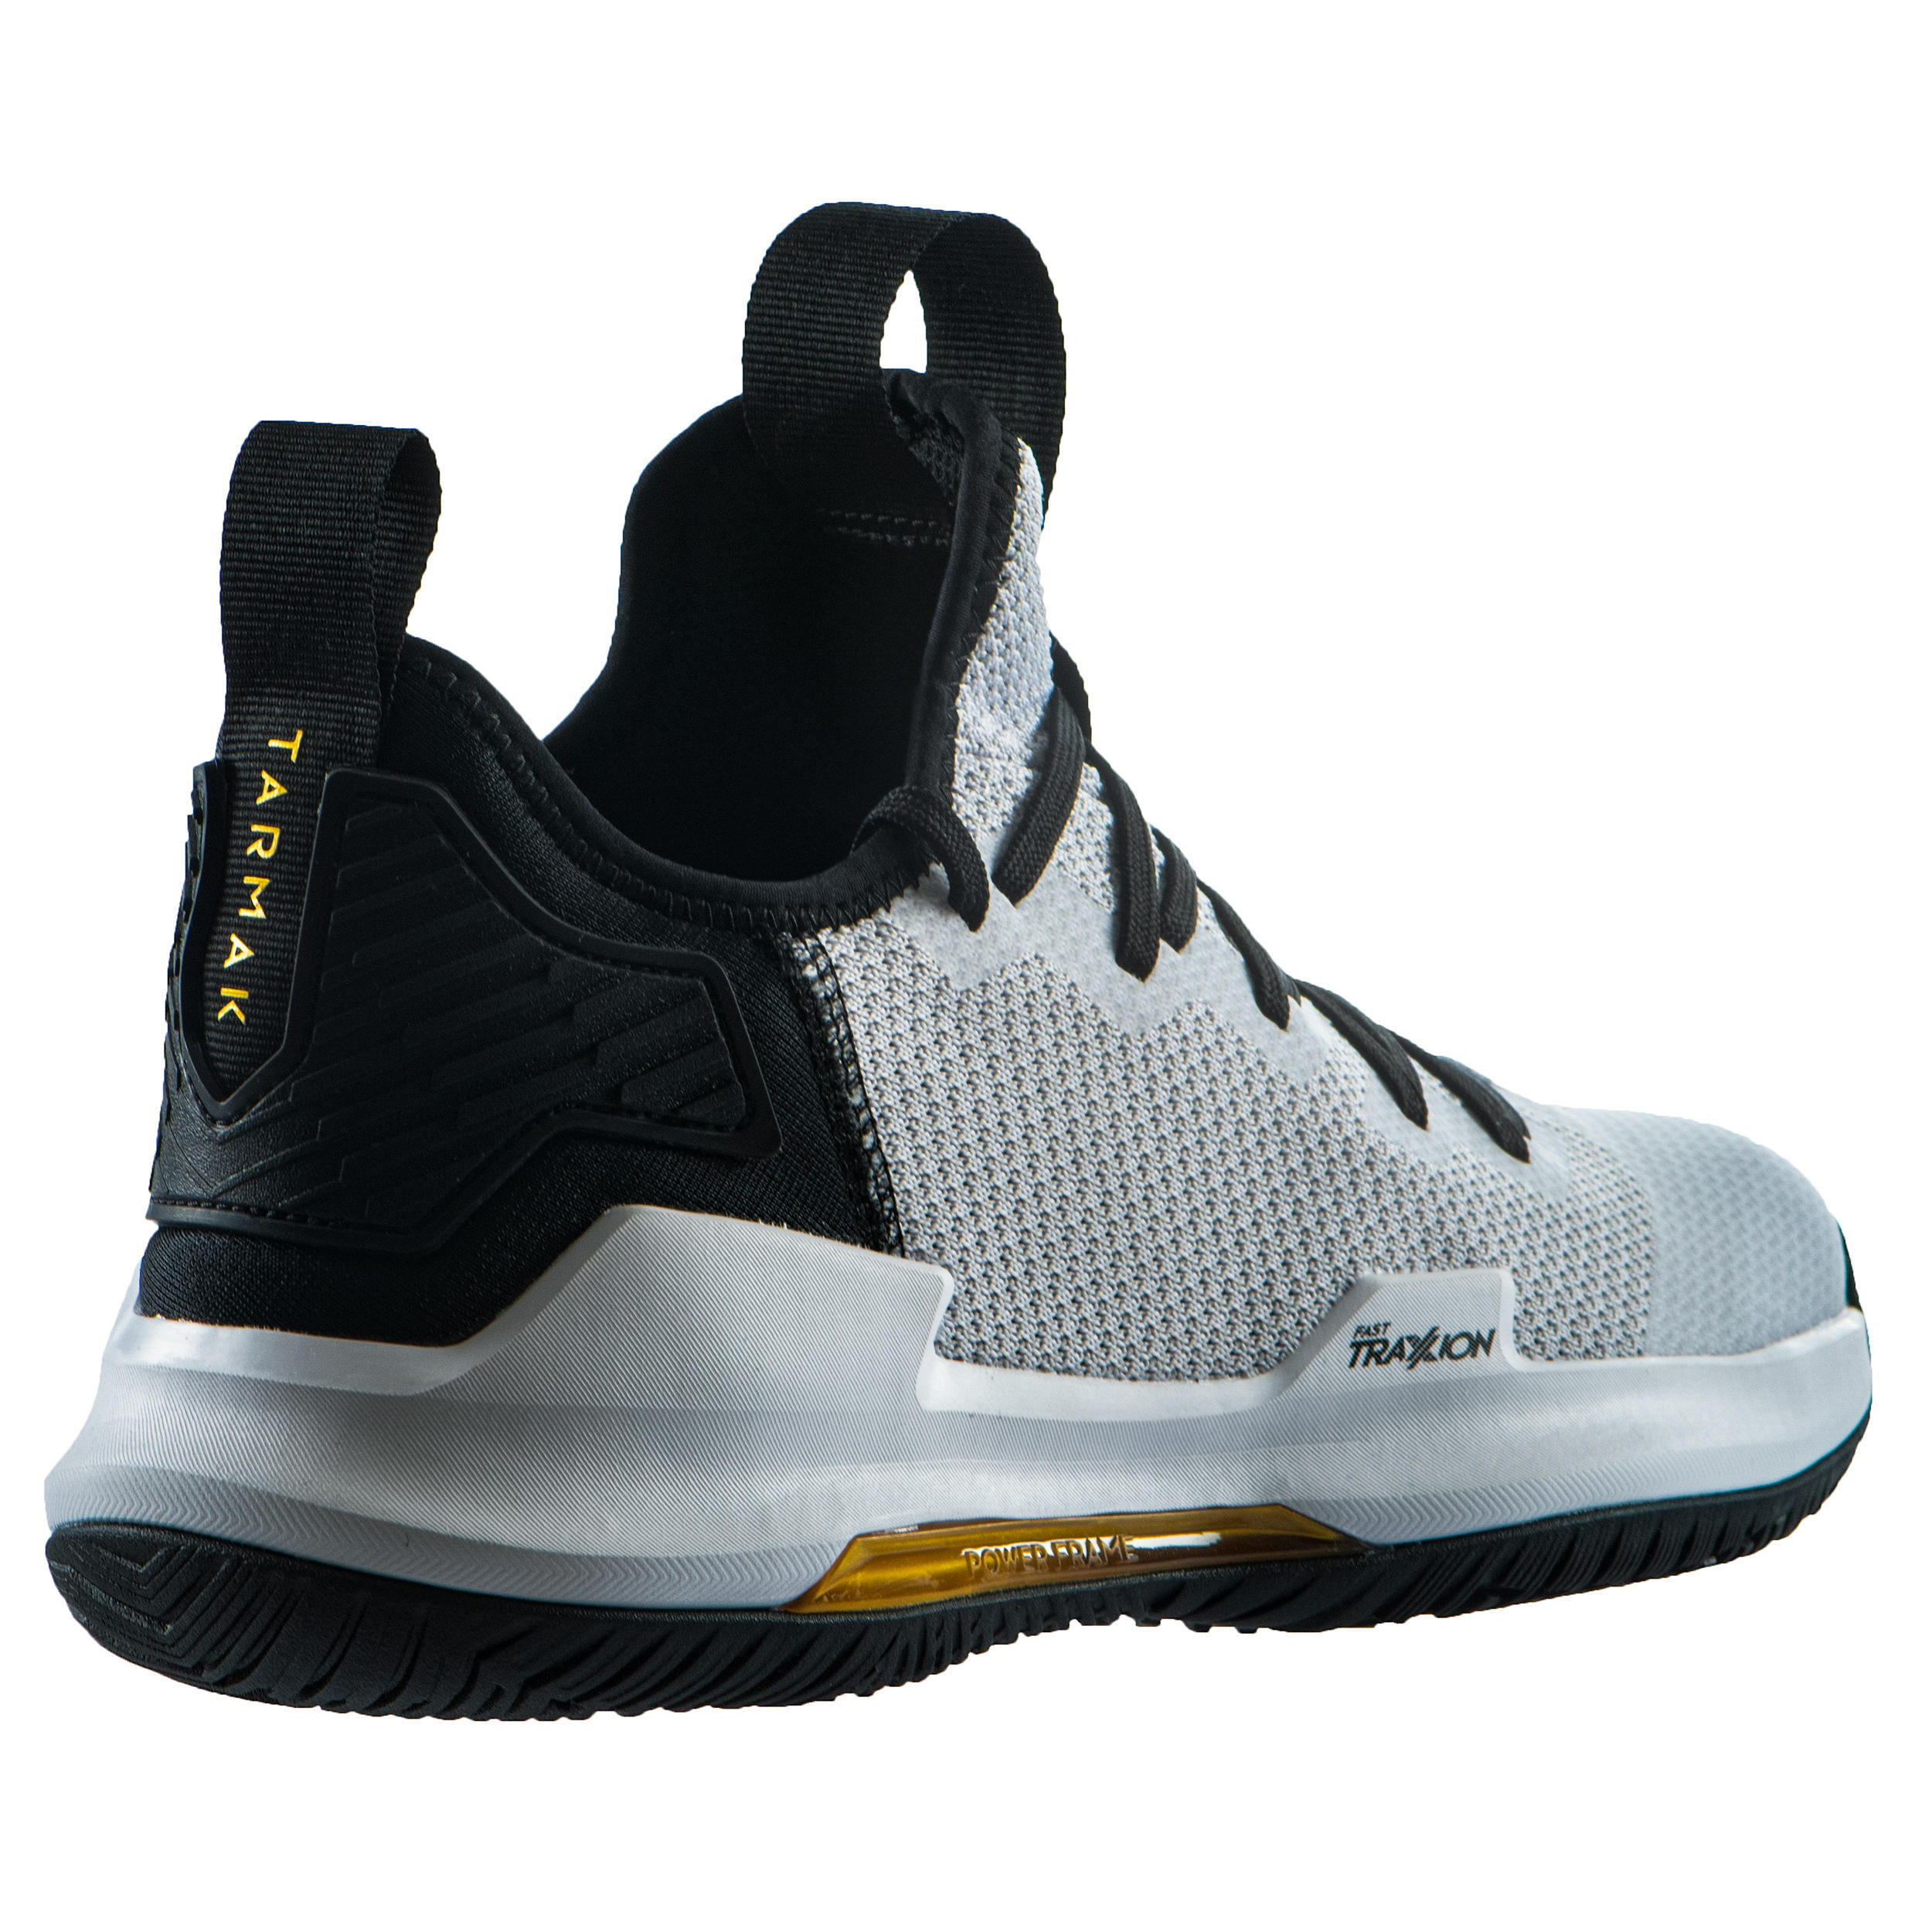 Low-Rise Basketball Shoes Fast 500 - Grey